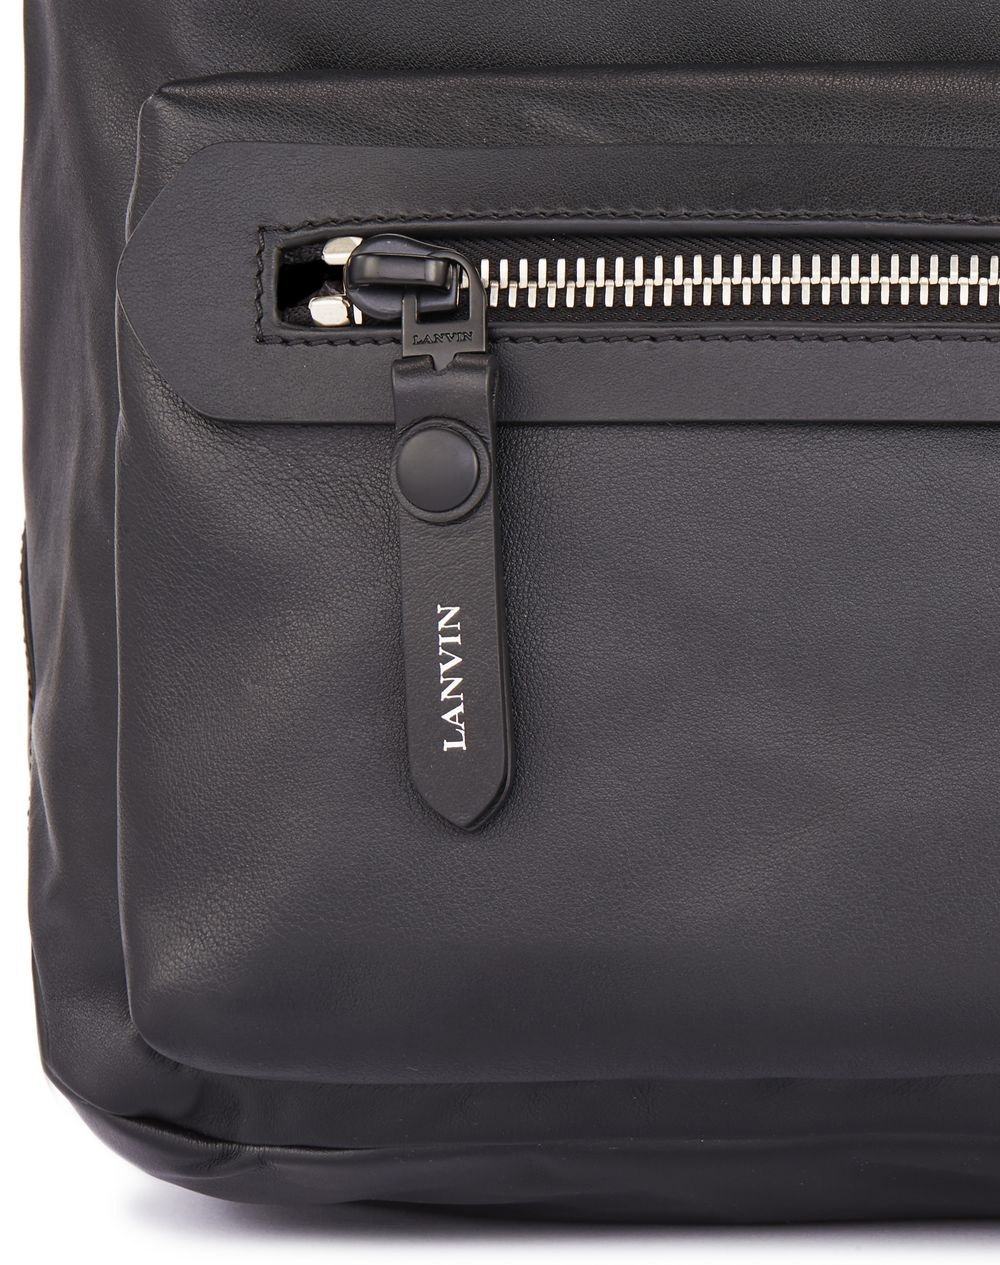 GRAINED CALFSKIN BACKPACK - Lanvin